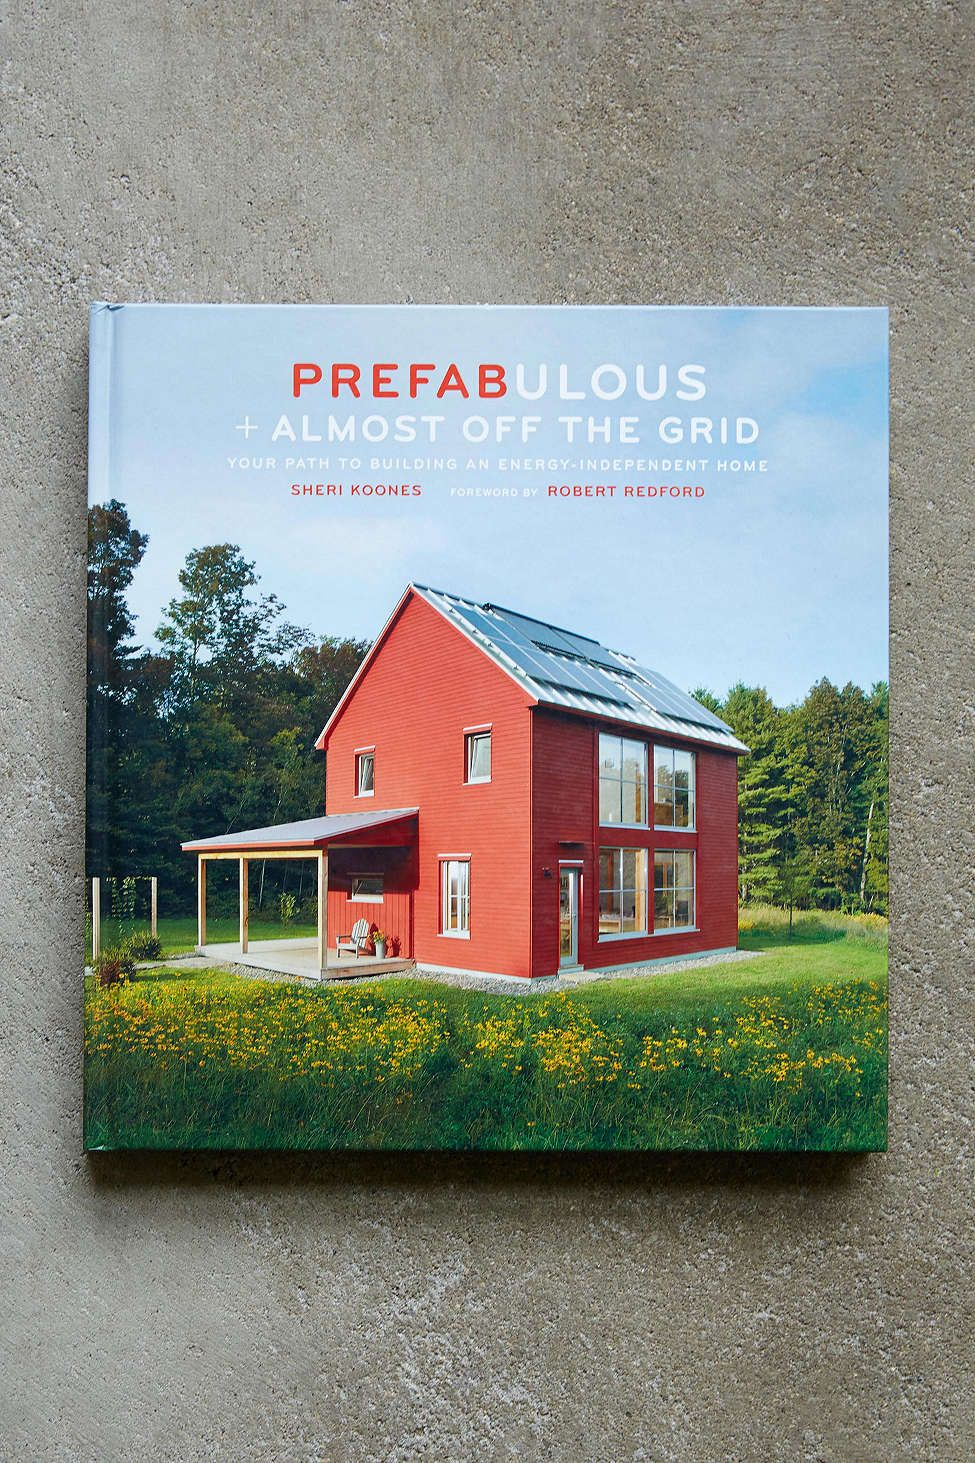 prefabulous almost off the grid your path to building an energy independent home - Energy Independent Home Plans